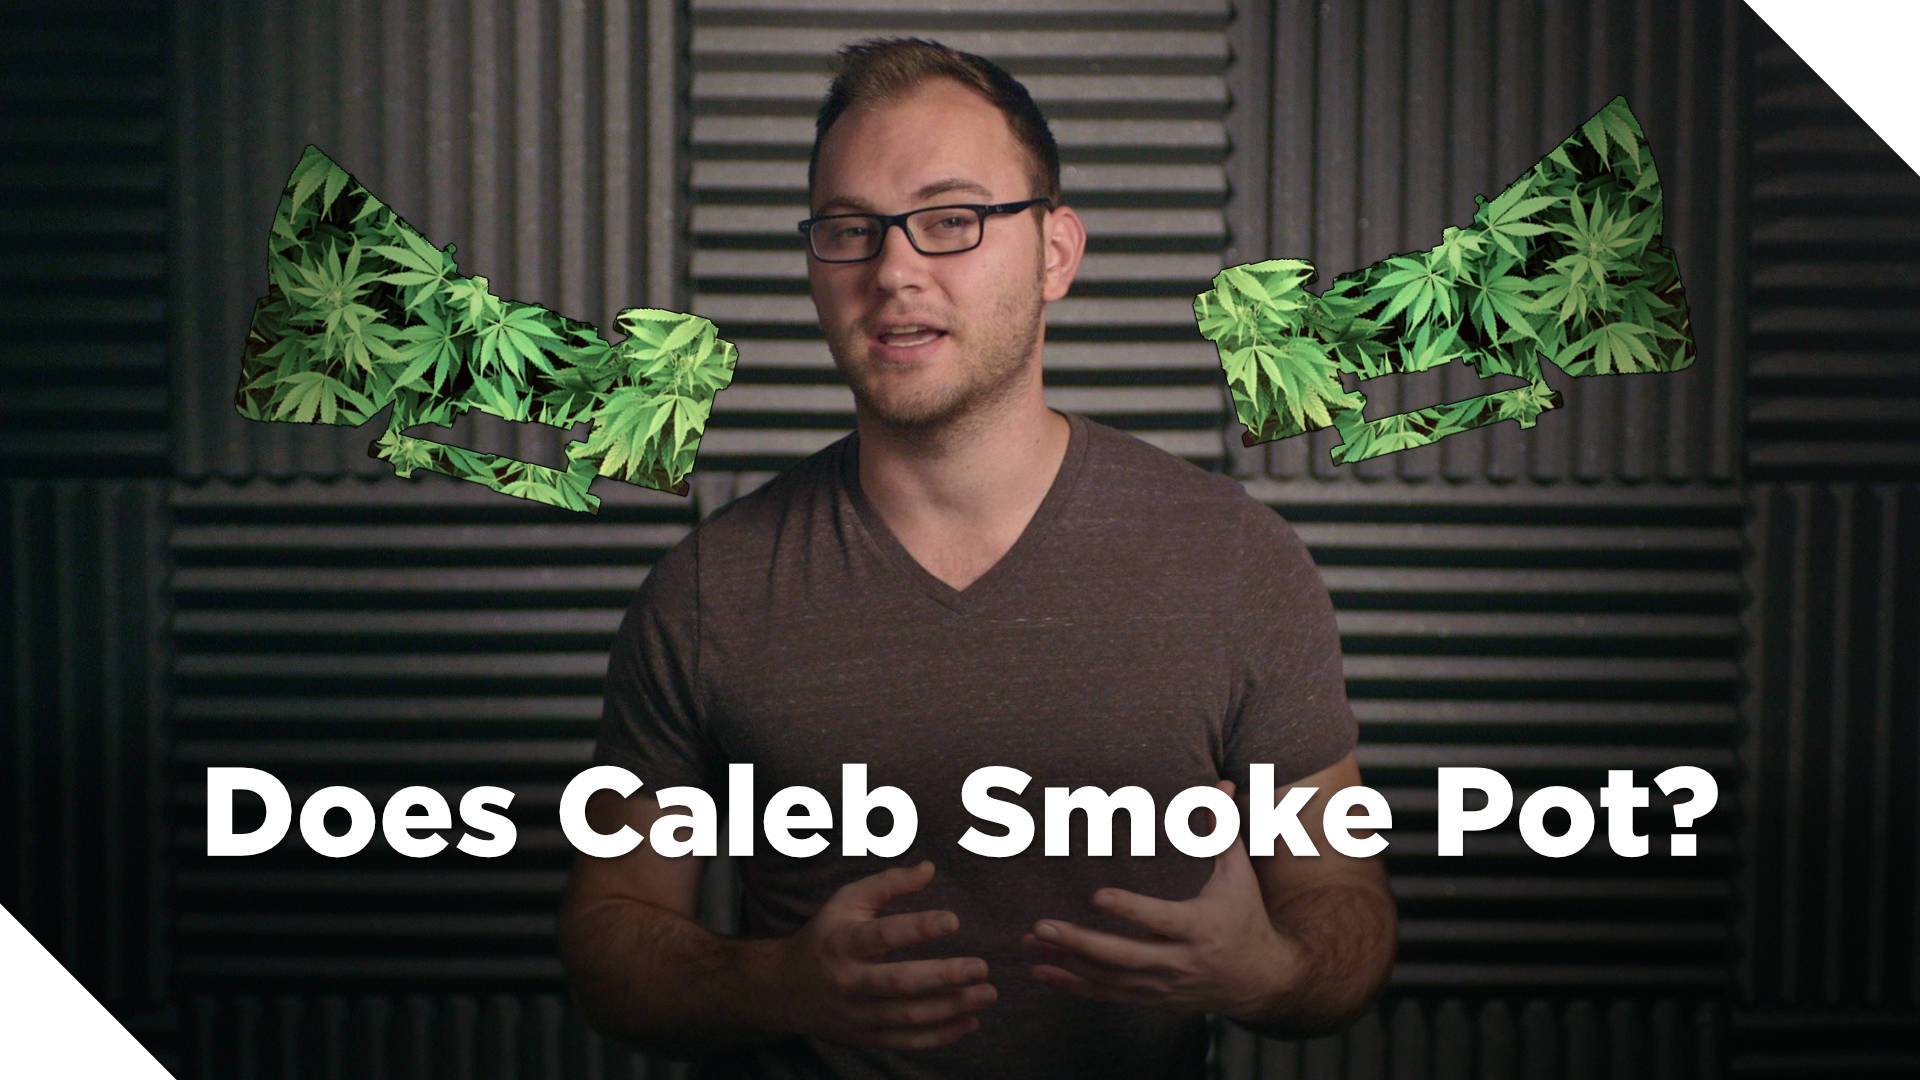 Does Caleb Smoke Pot?